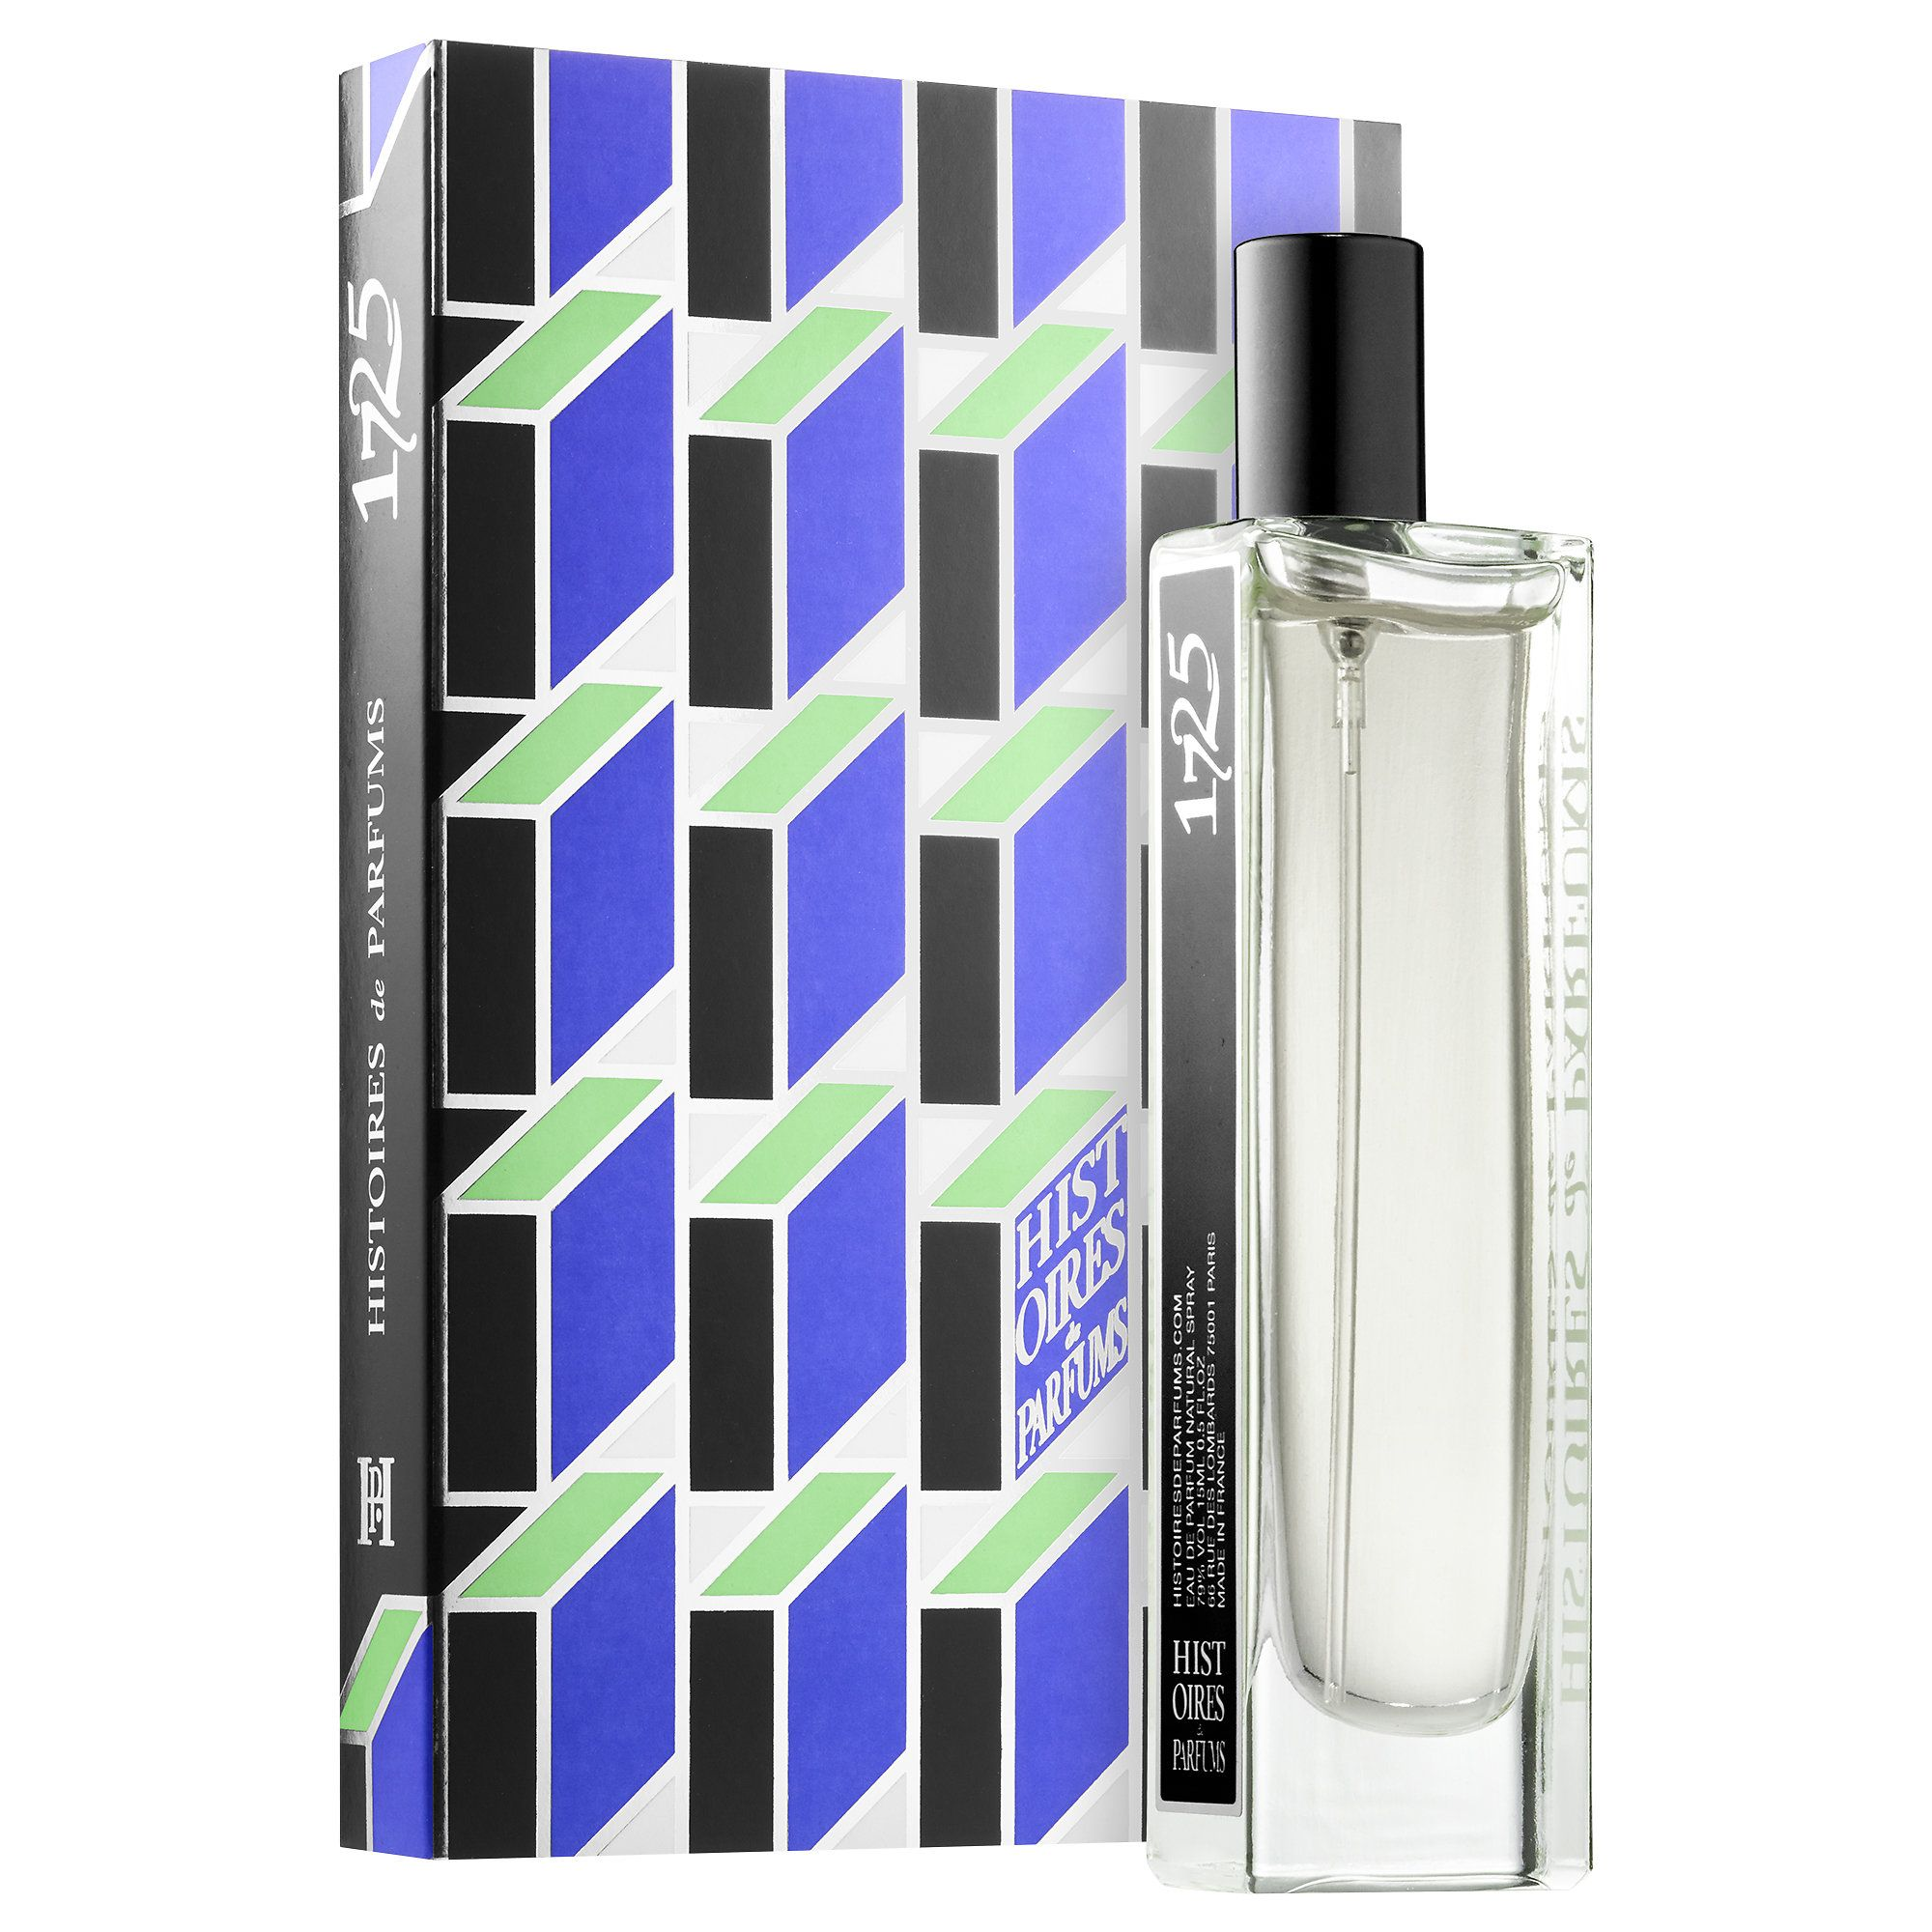 Travel Histoires 1725 At SephoraInspired De By Parfums Shop Spray 3JcFKT1l